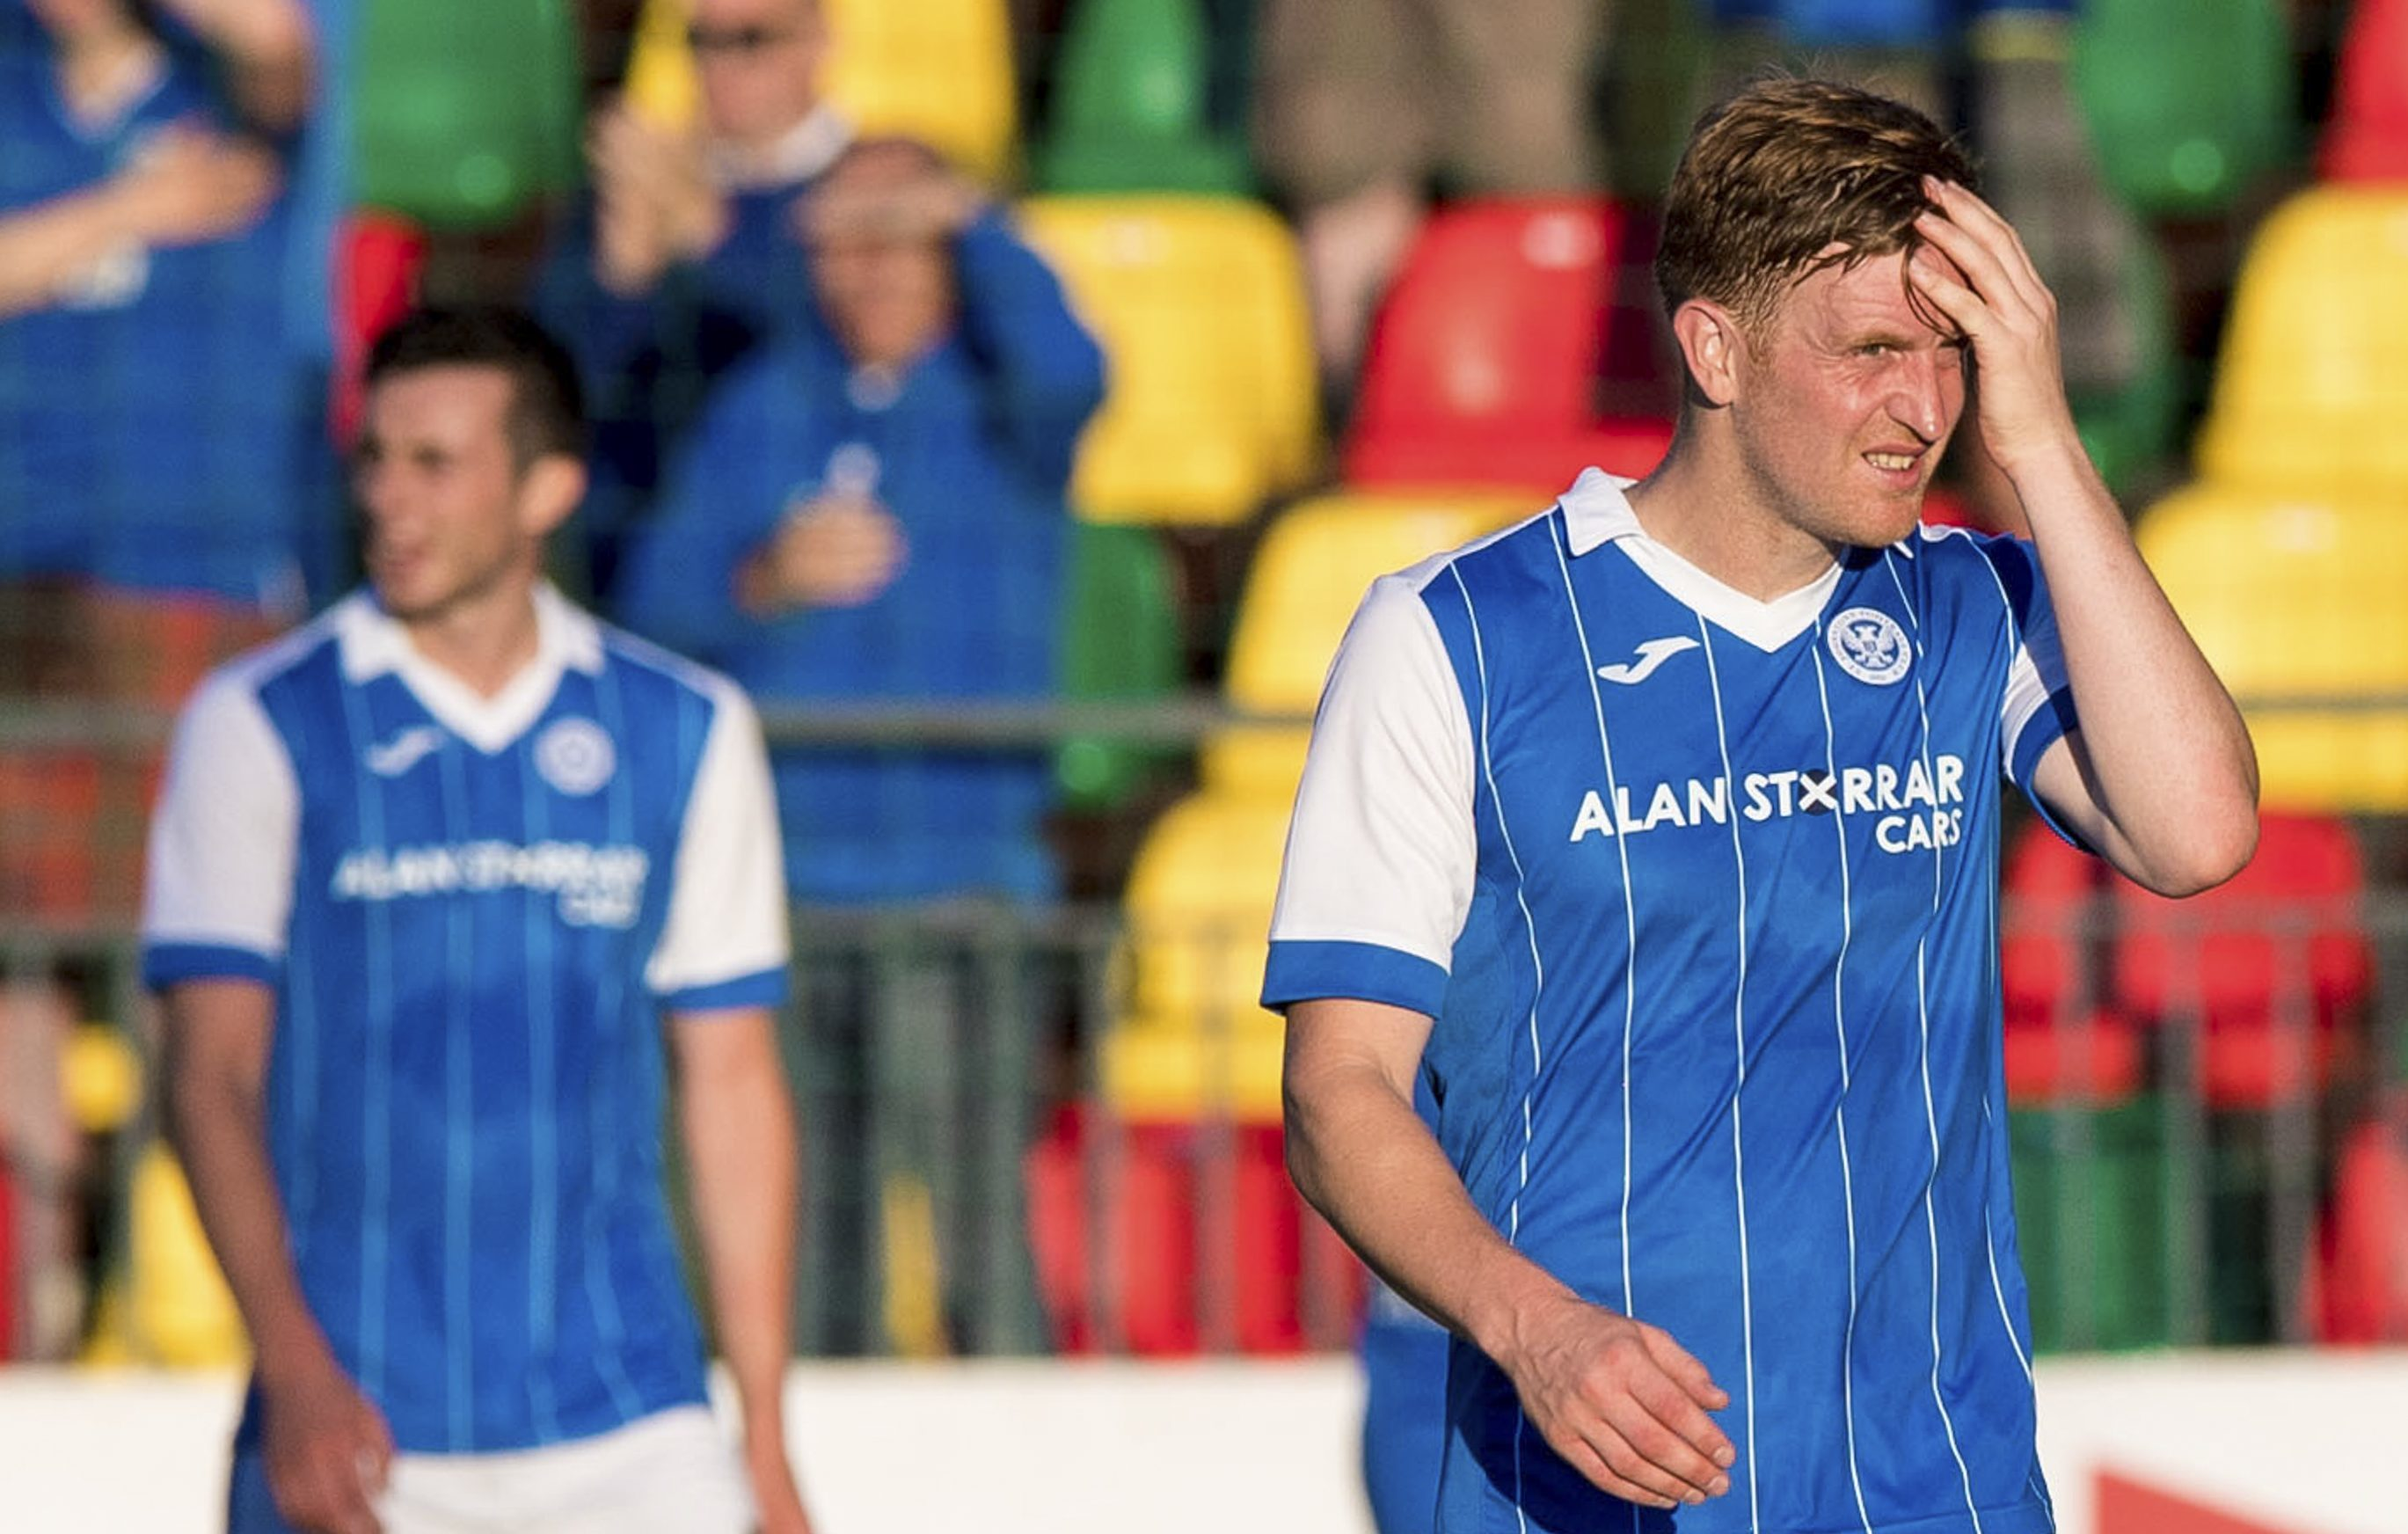 Liam Craig is a dejected man after the game.